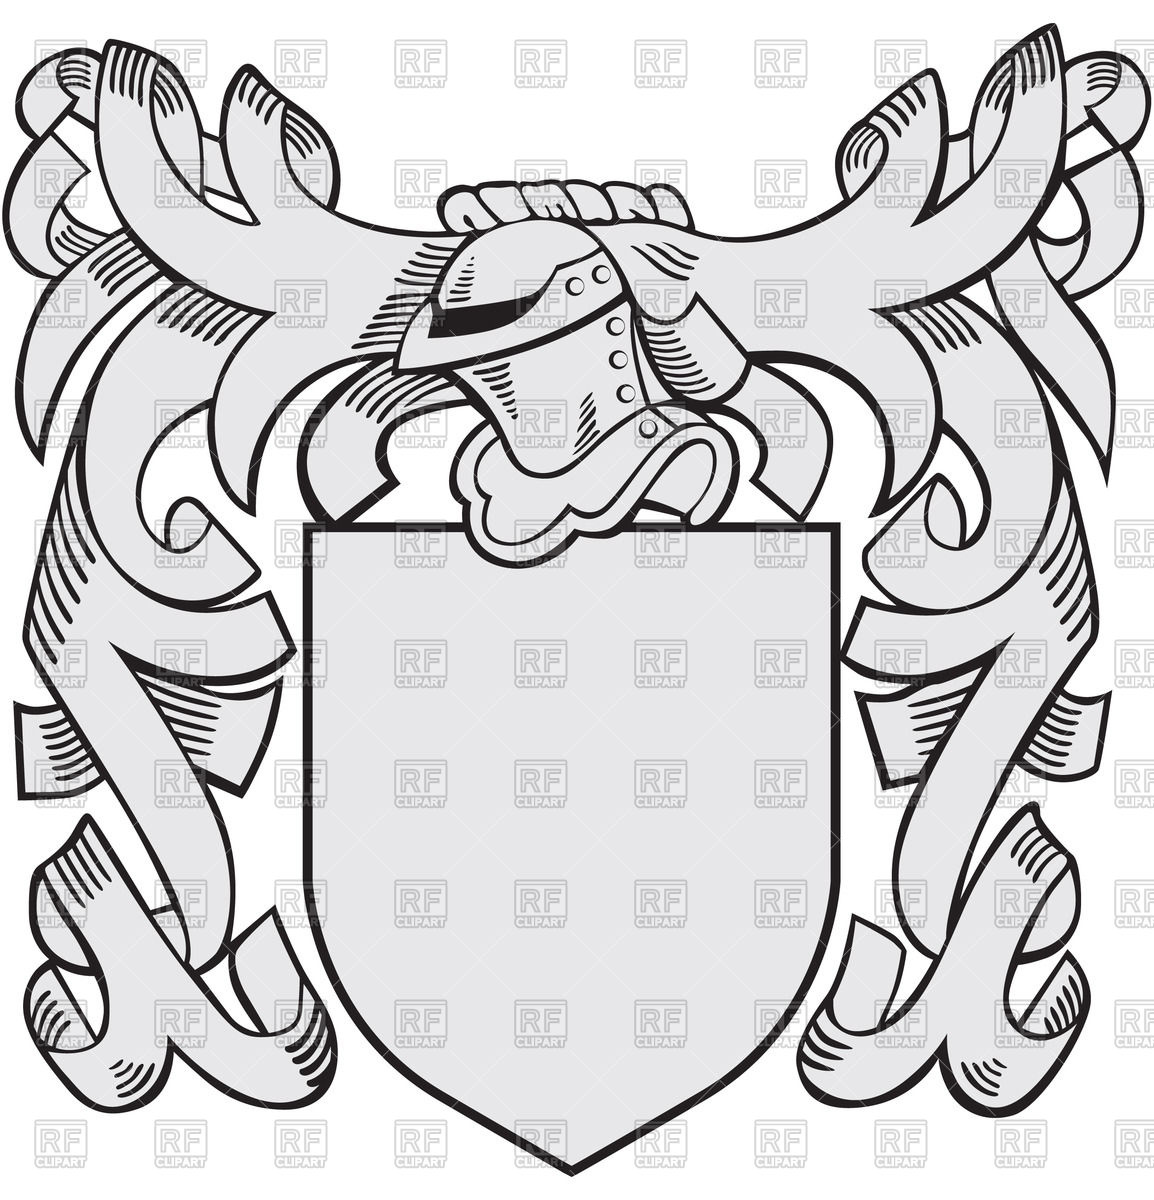 1154x1200 Heraldic Templates With Helmet And Shield